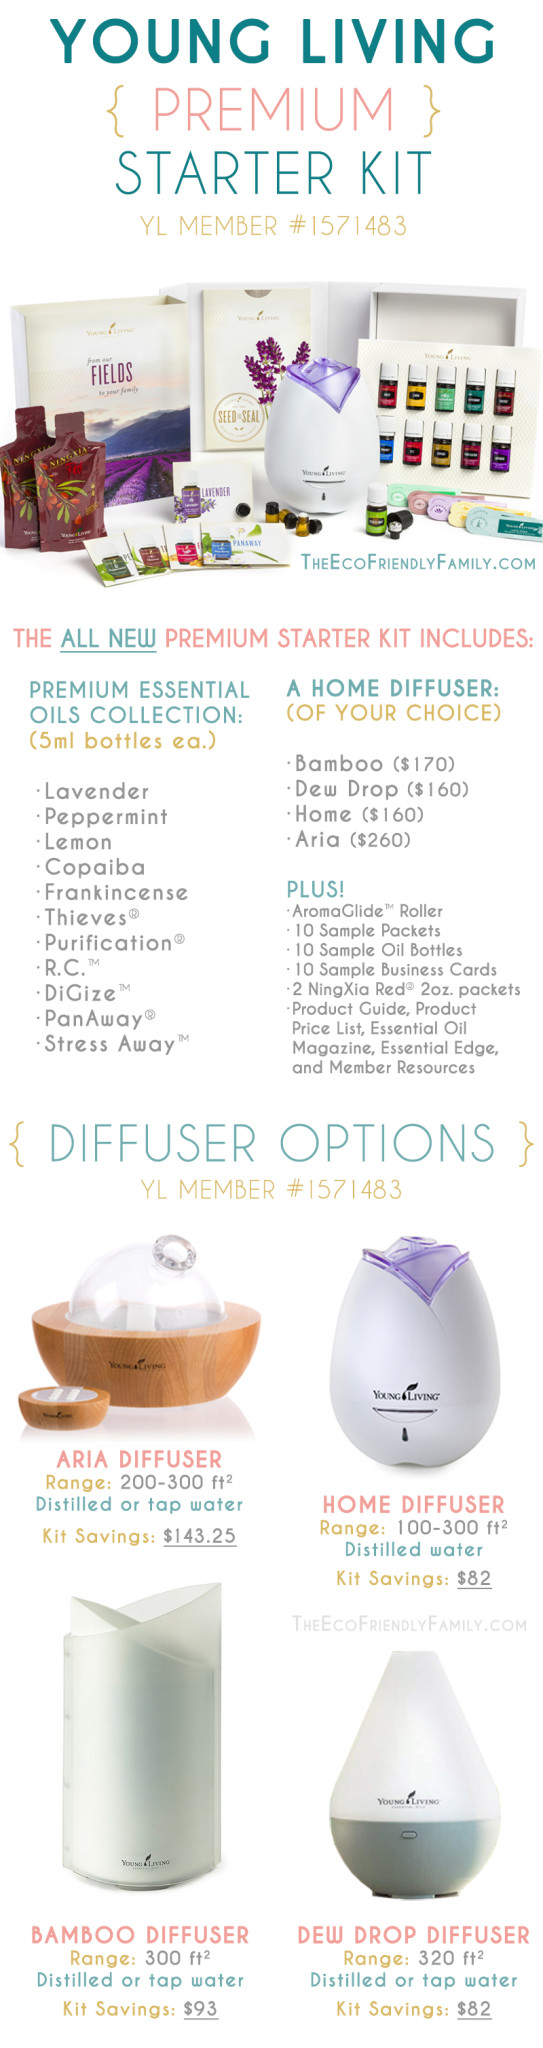 What Young Living membership option is right for you? — Check out the new Young Living Premium Starter Kits!